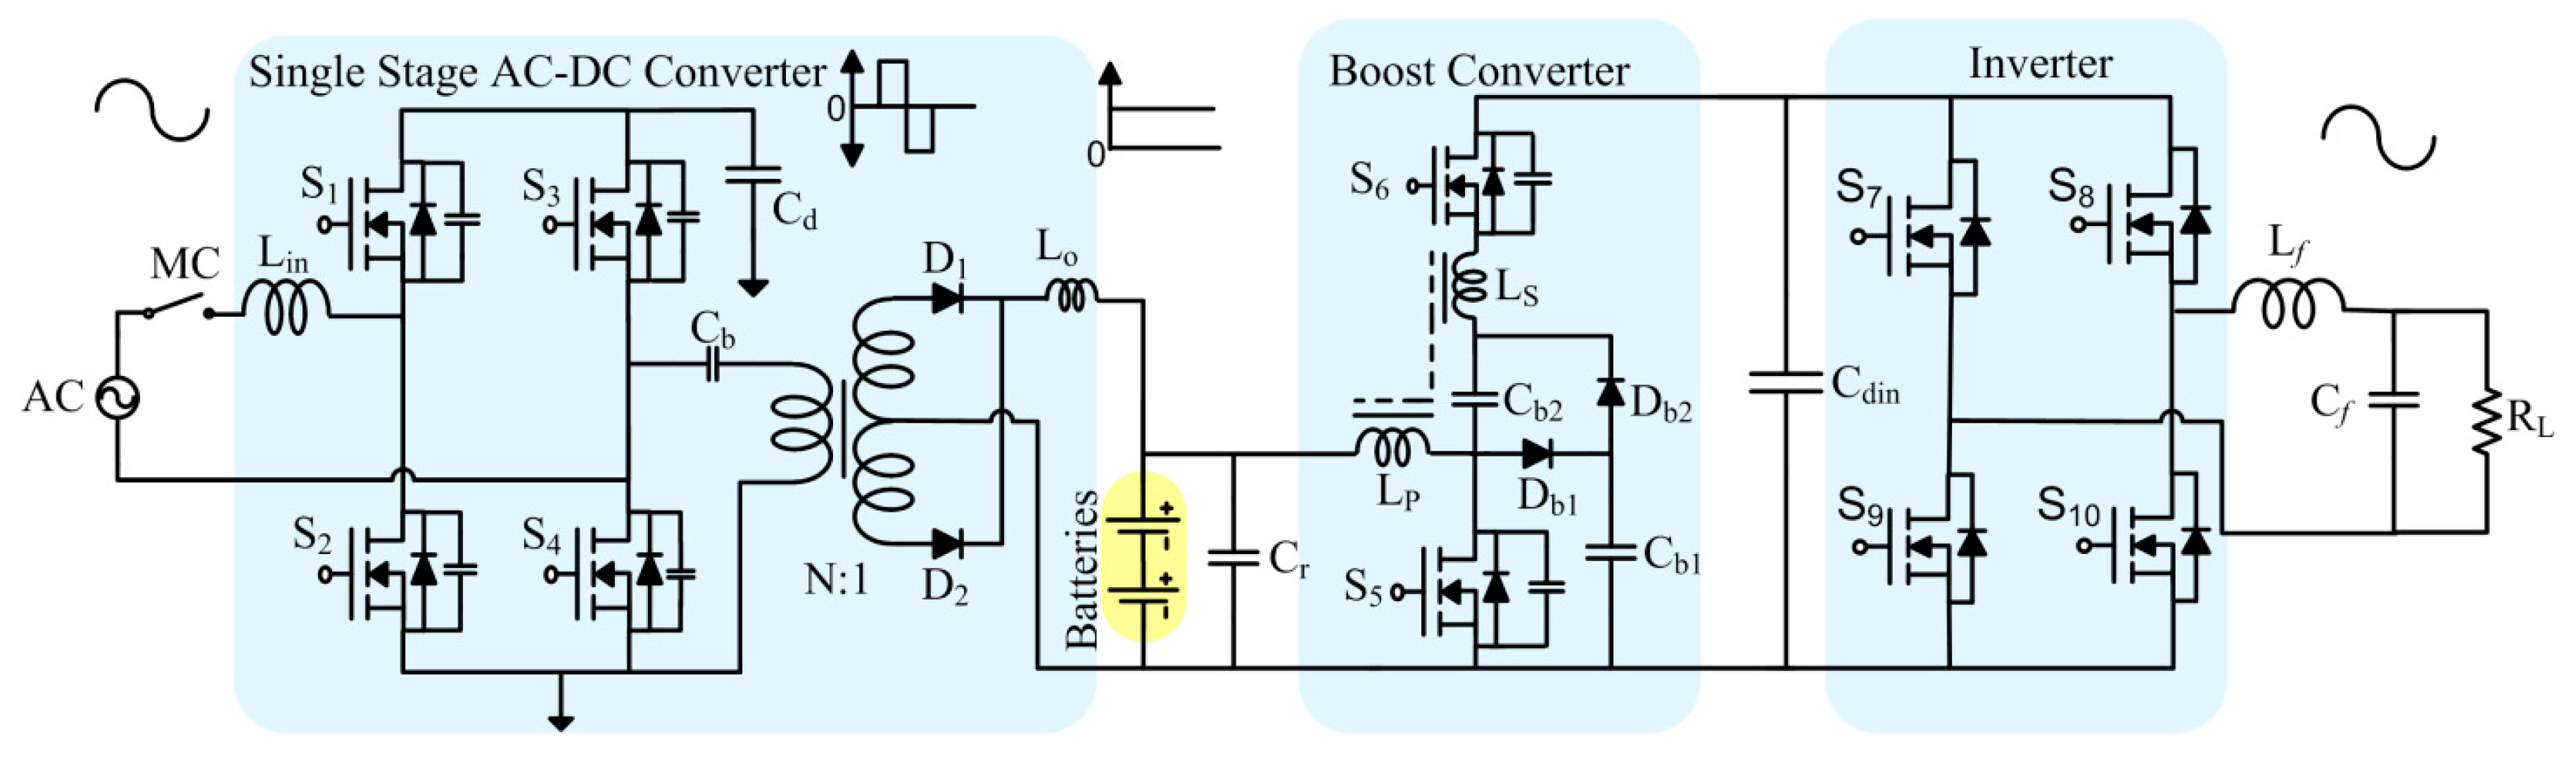 High Frequency Inverter Circuit Diagram - Trusted Wiring Diagram •